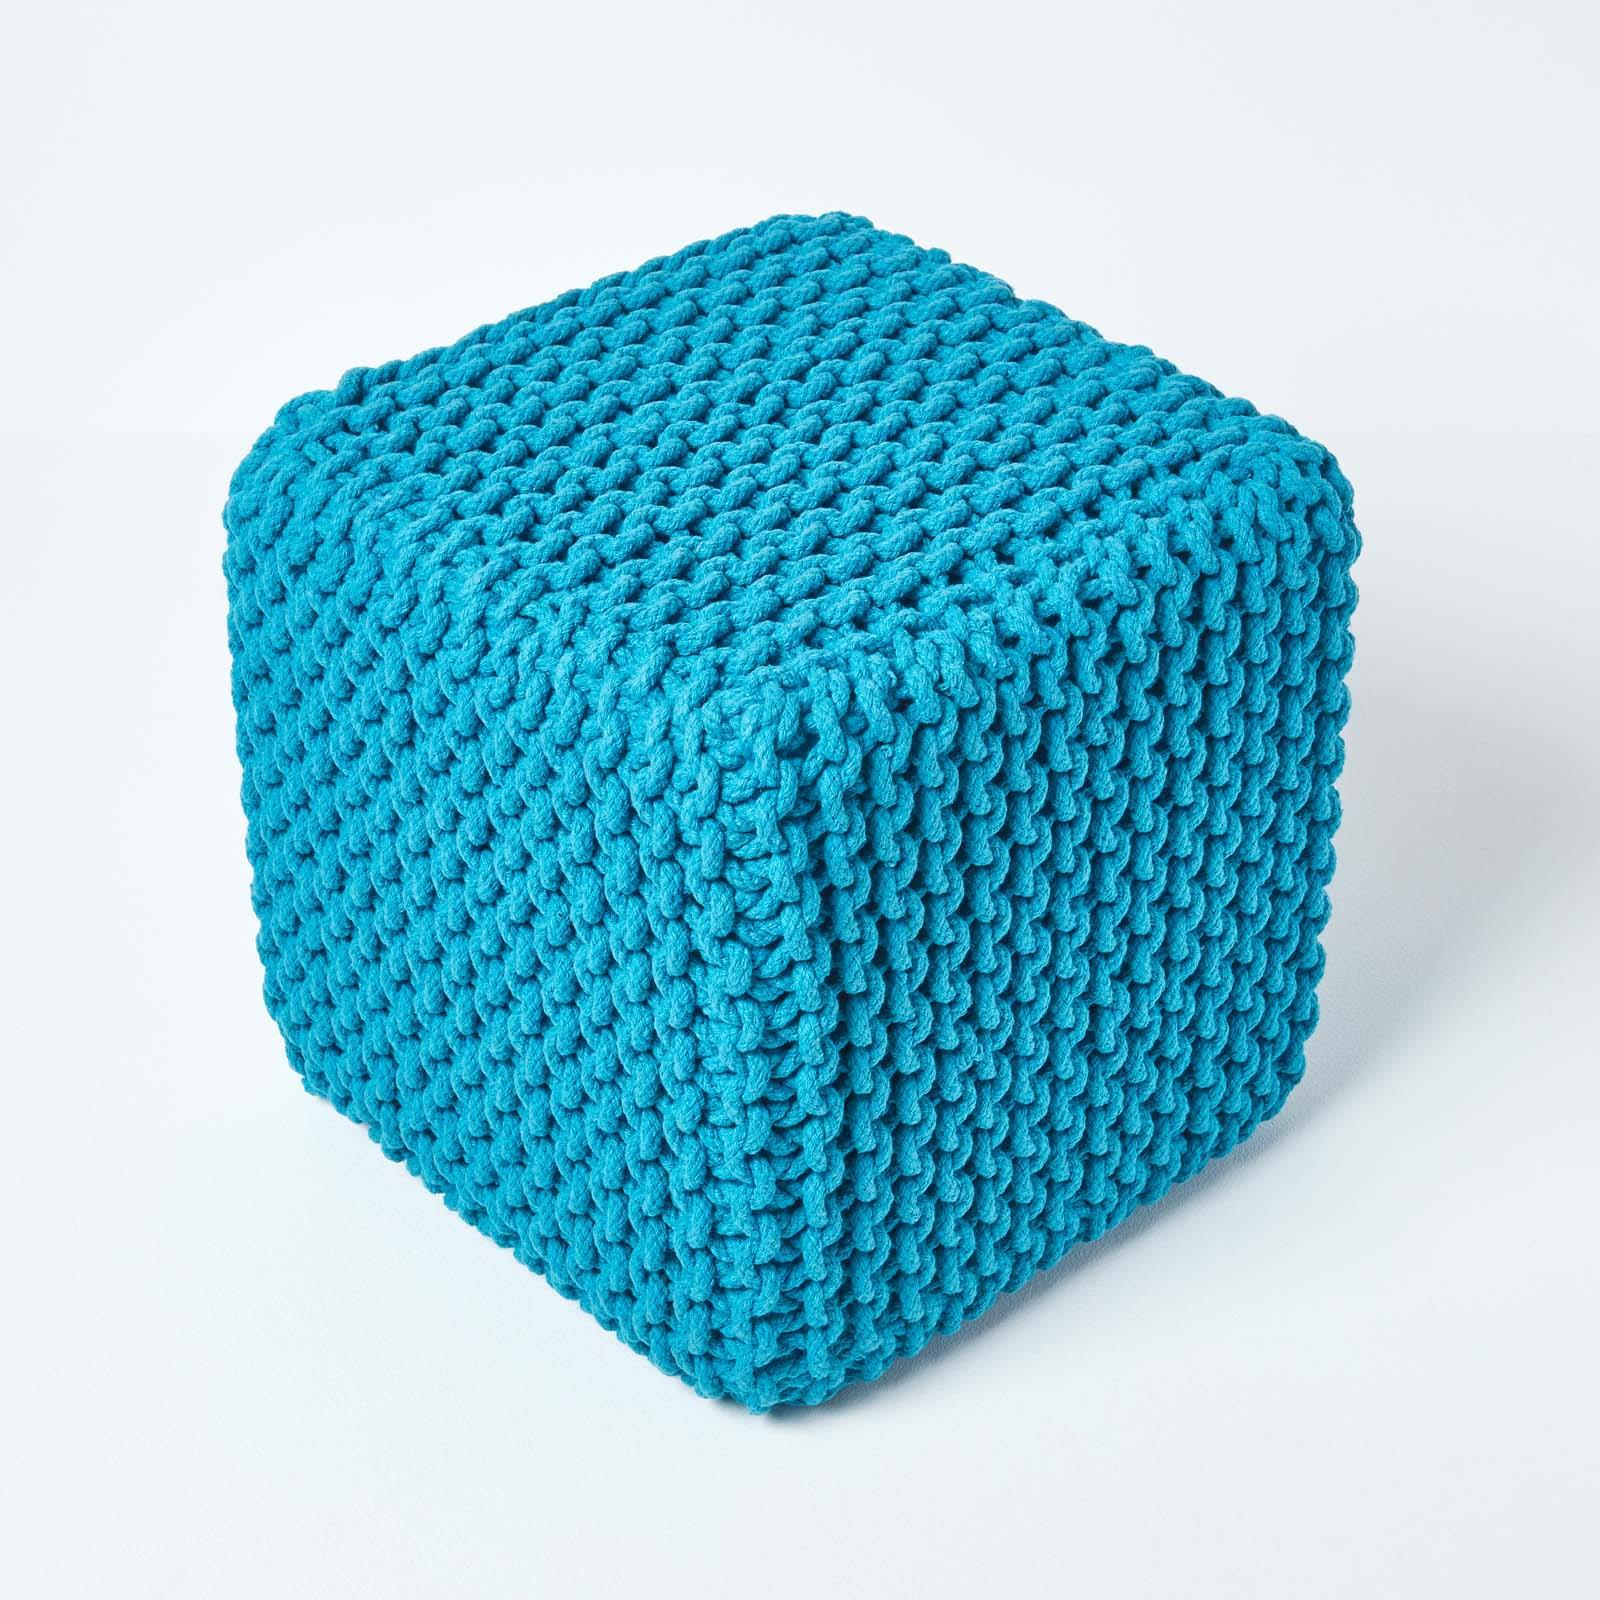 Hand-Knitted-100-Cotton-Pouffes-Round-Sphere-Or-Cube-Square-Chunky-Footstools thumbnail 184